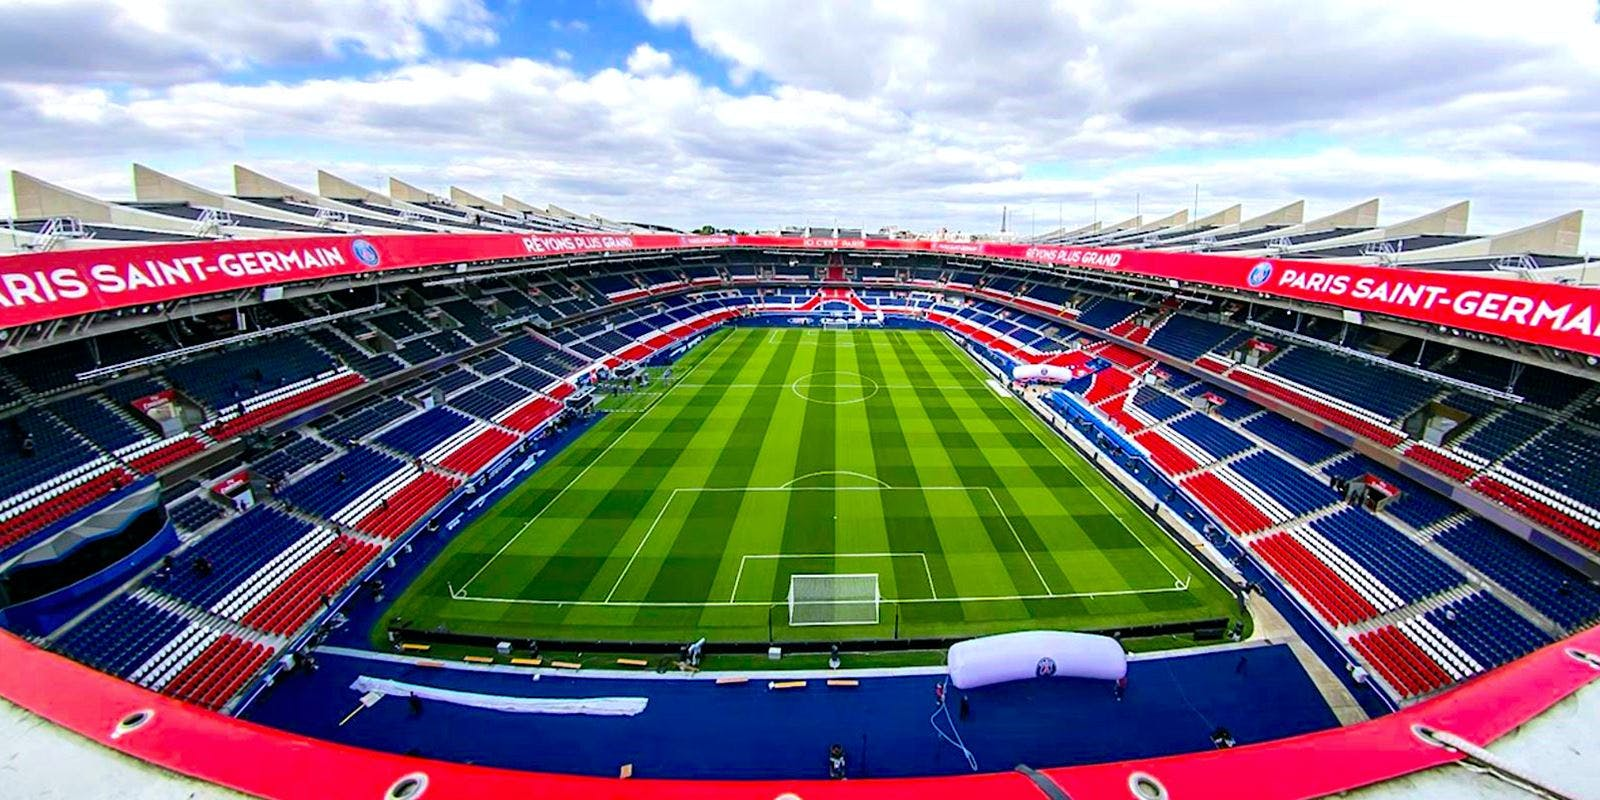 Tickets, tours and experiences to the Parc des Princes | musement